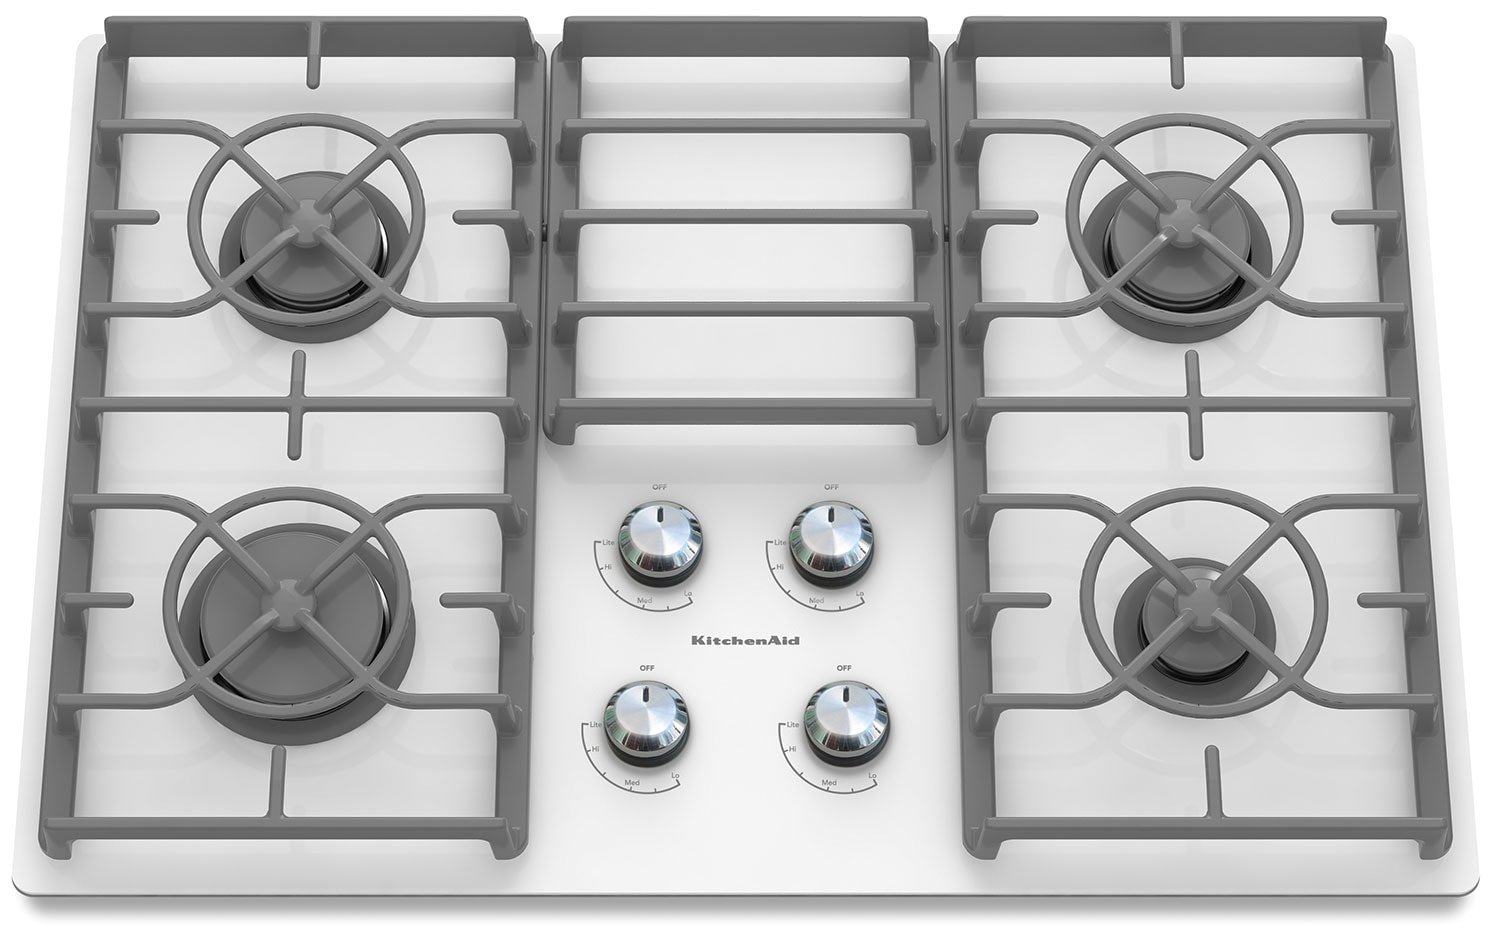 kitchenaid gas cooktop architect series ii